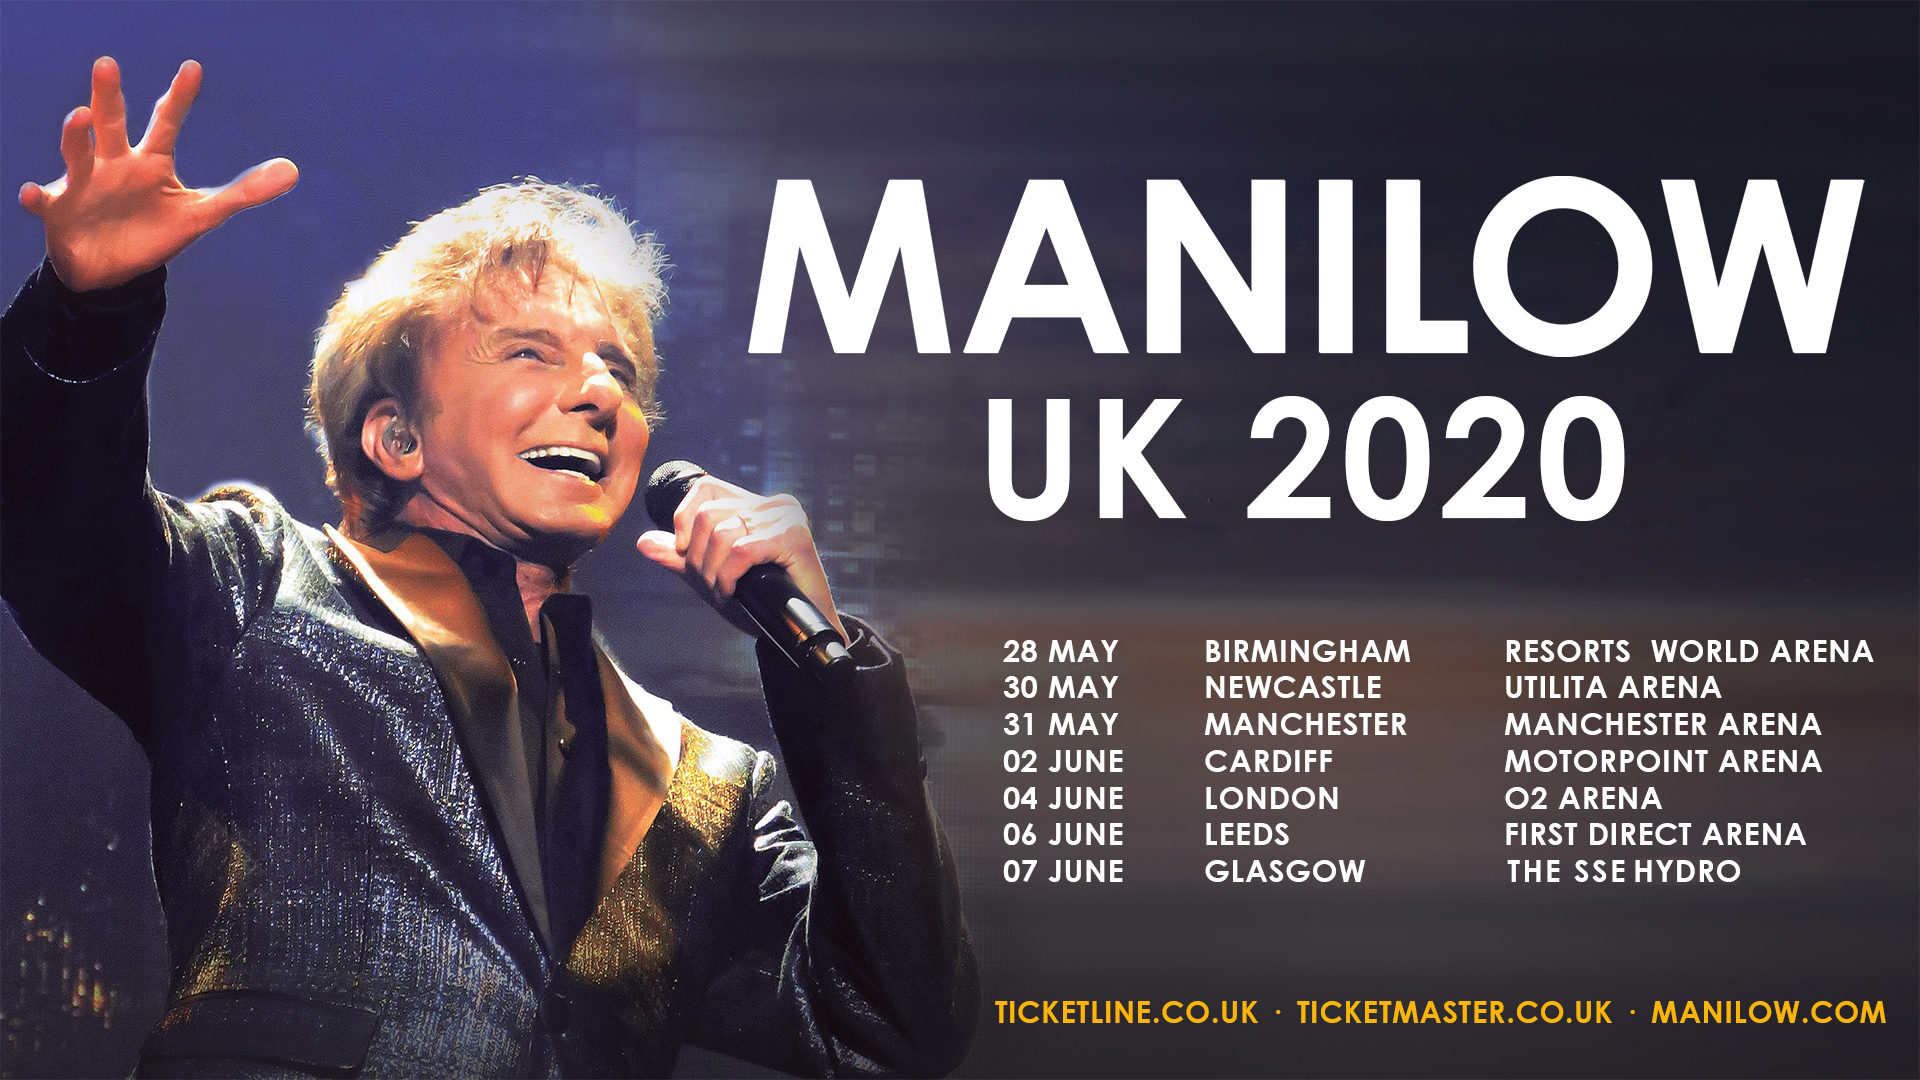 BARRY MANILOW ANNOUNCES UK 2020 CONCERTS!